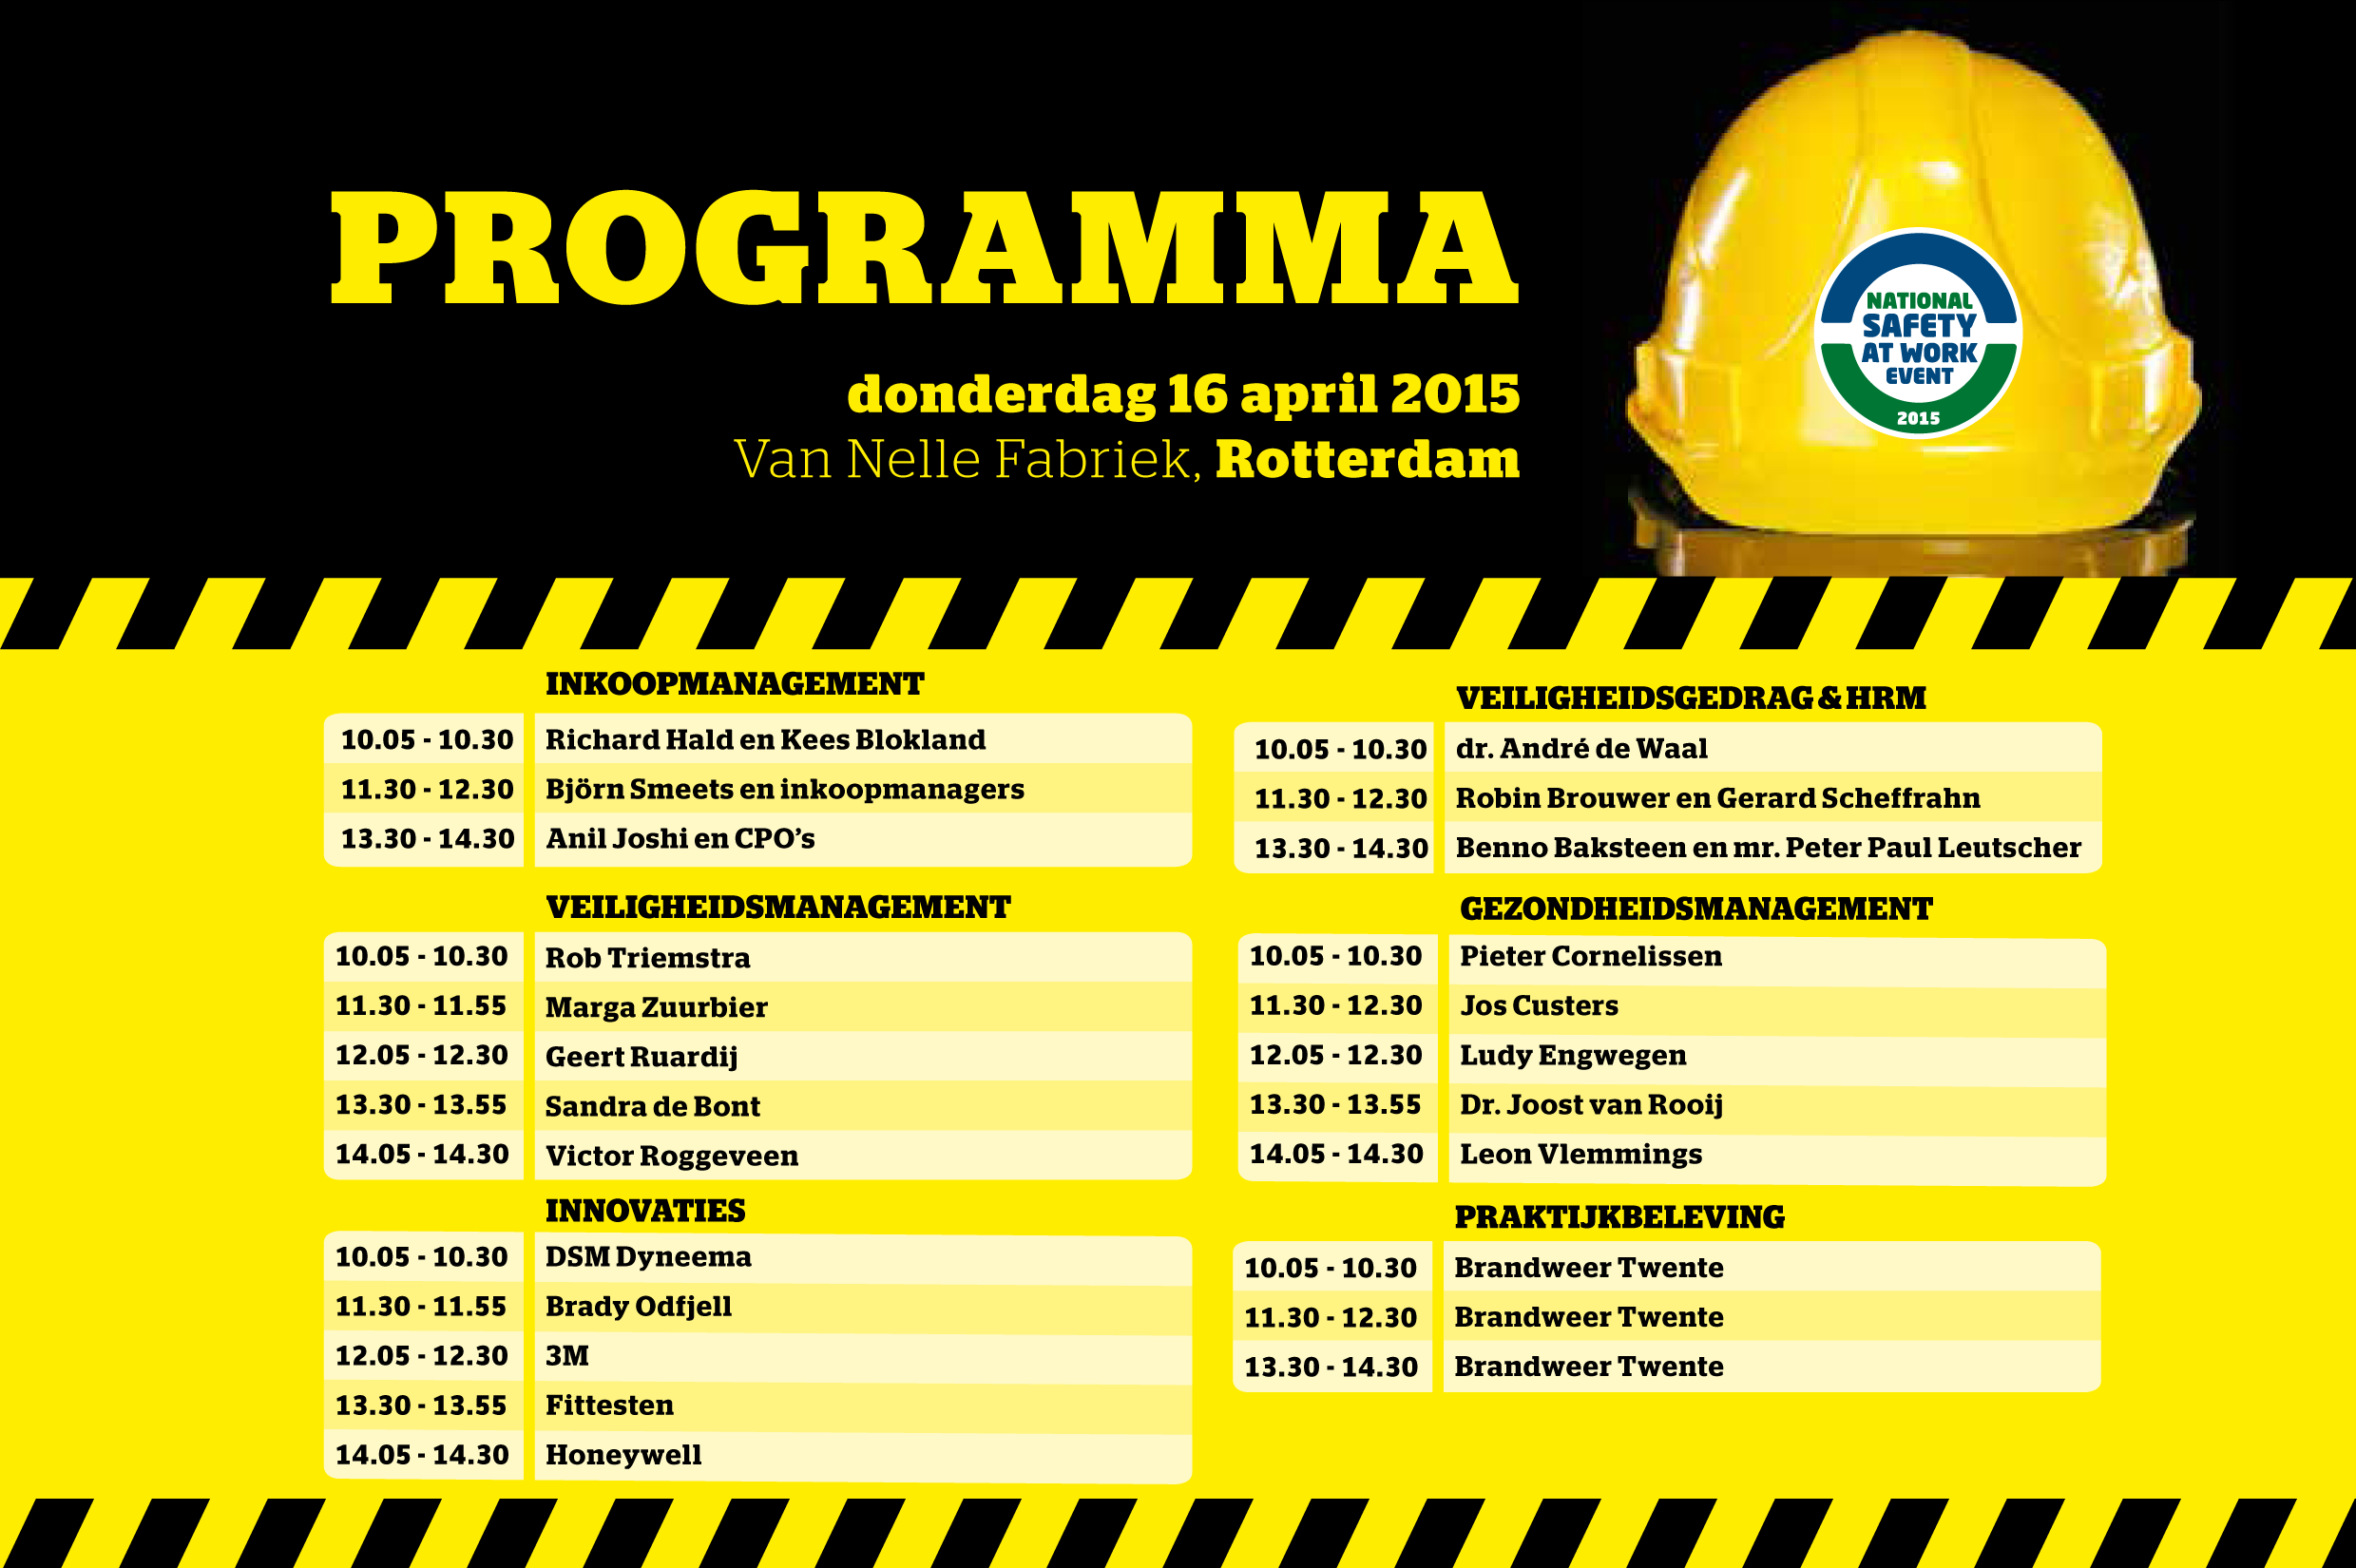 National Safety at Work Event, tot morgen!